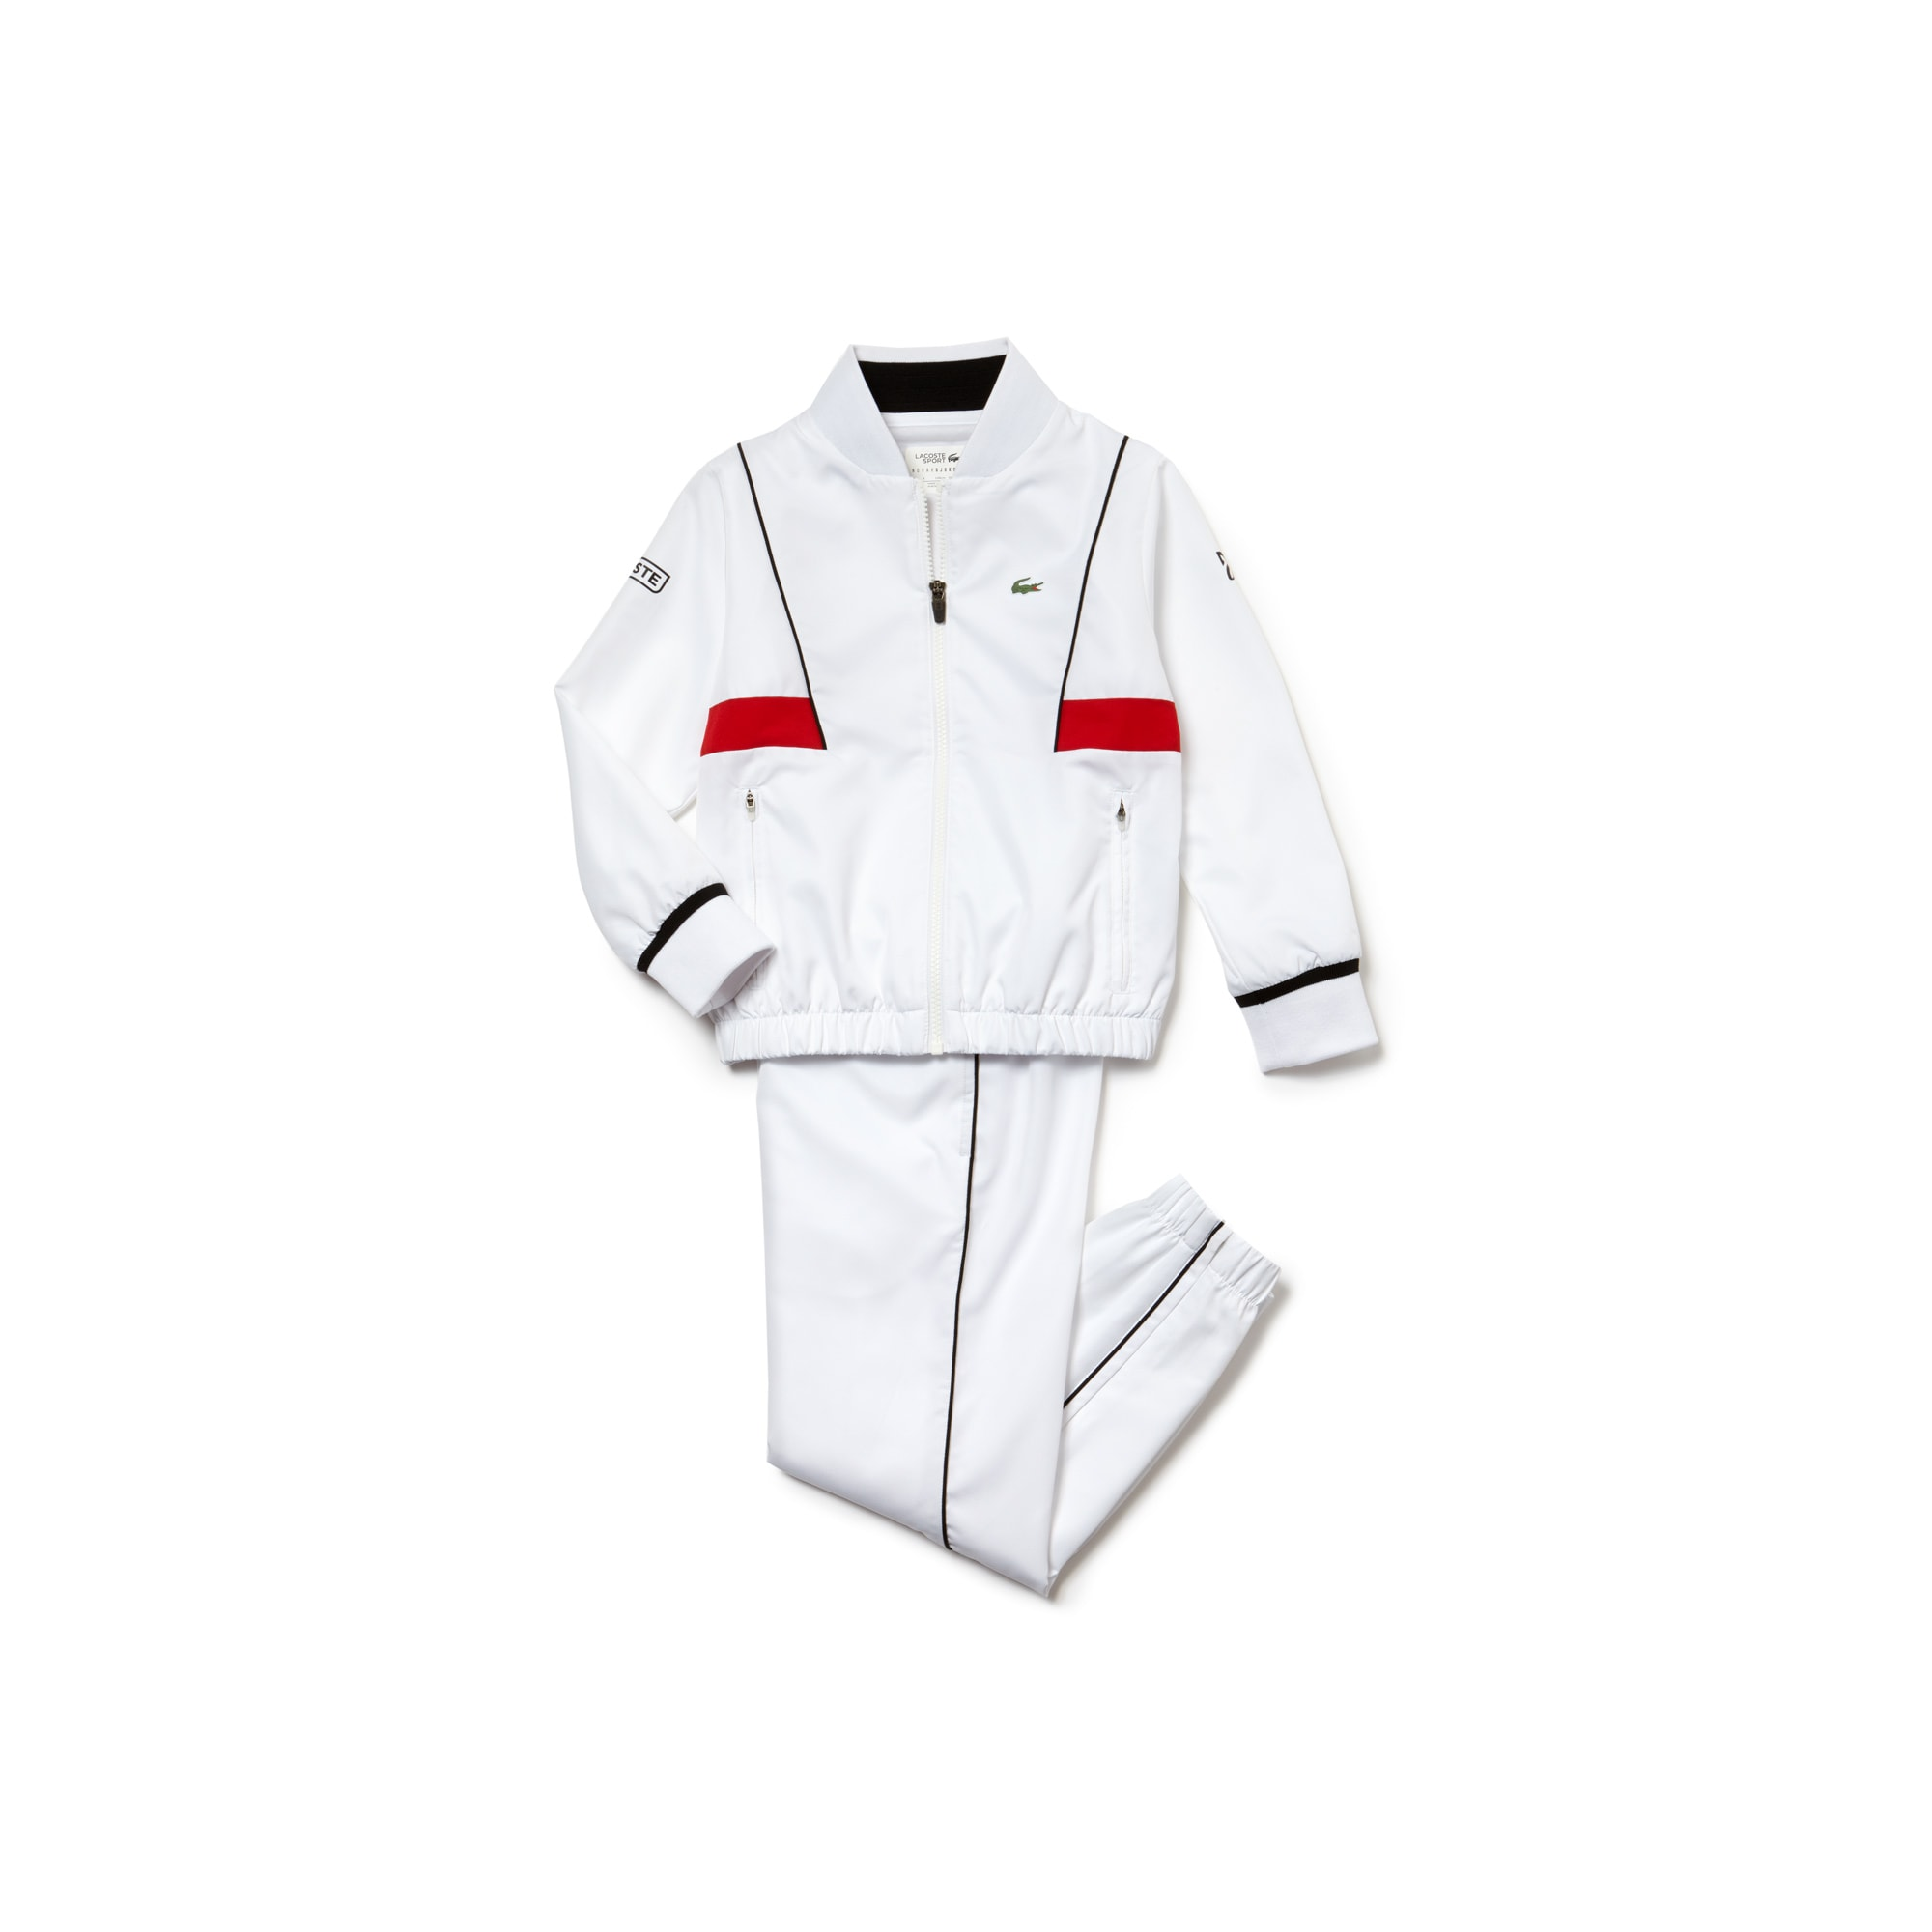 Boys' LACOSTE SPORT NOVAK DJOKOVIC COLLECTION Taffeta Tracksuit